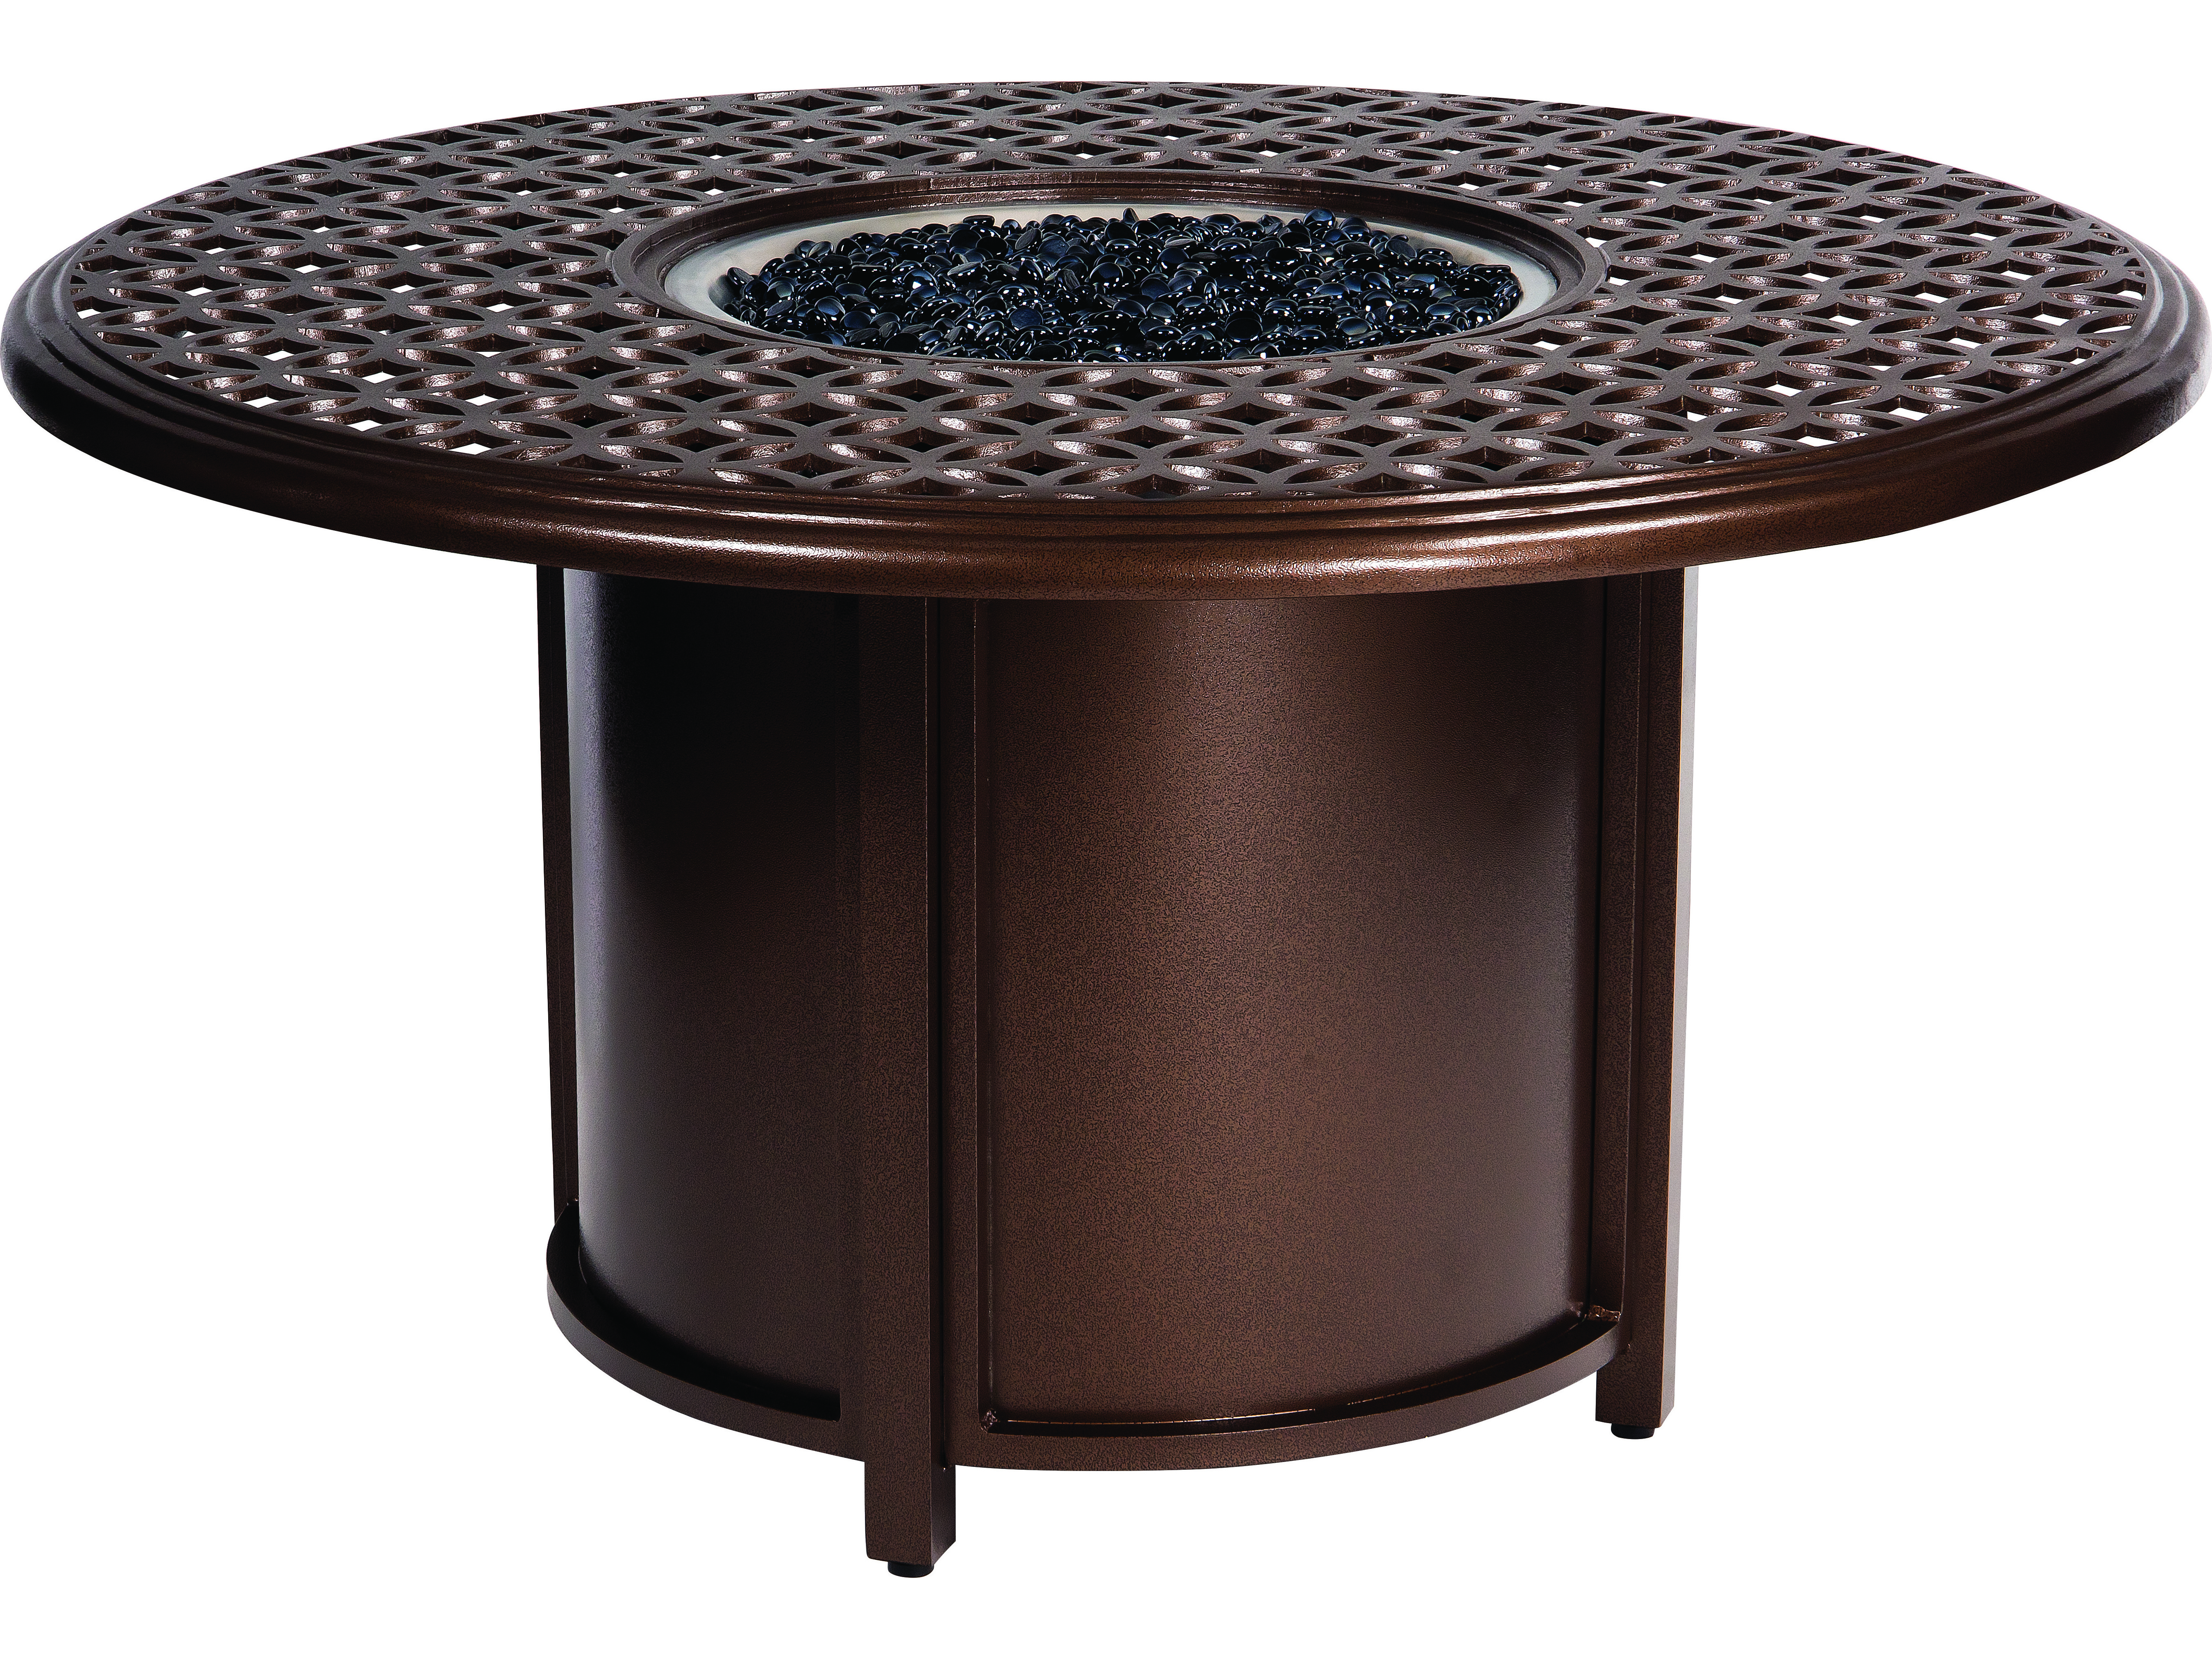 woodard casa cast aluminum fire table with round chat height accent touch zoom oak lamp end tables storage bedroom all metal coffee high nightstand card target small side windham